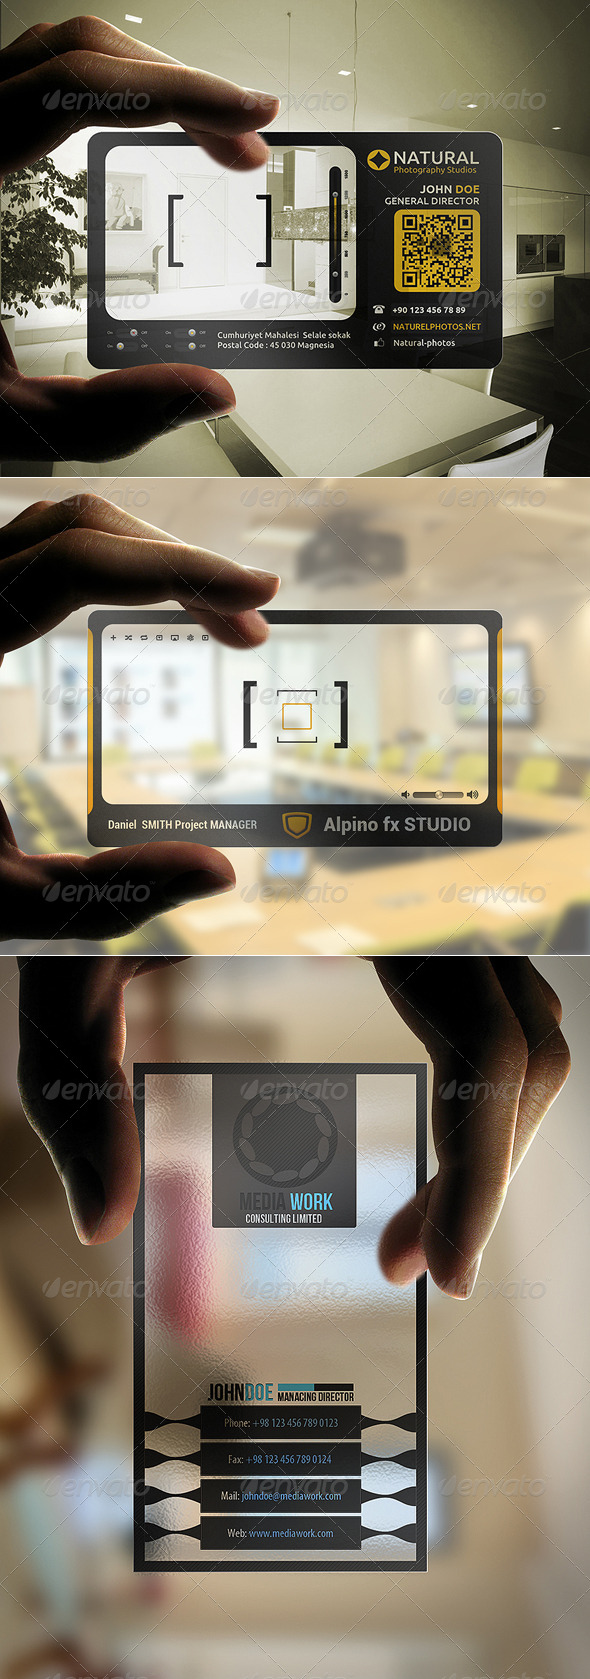 GraphicRiver Business Card BUNDLE 3 in 1 # 4 5476068